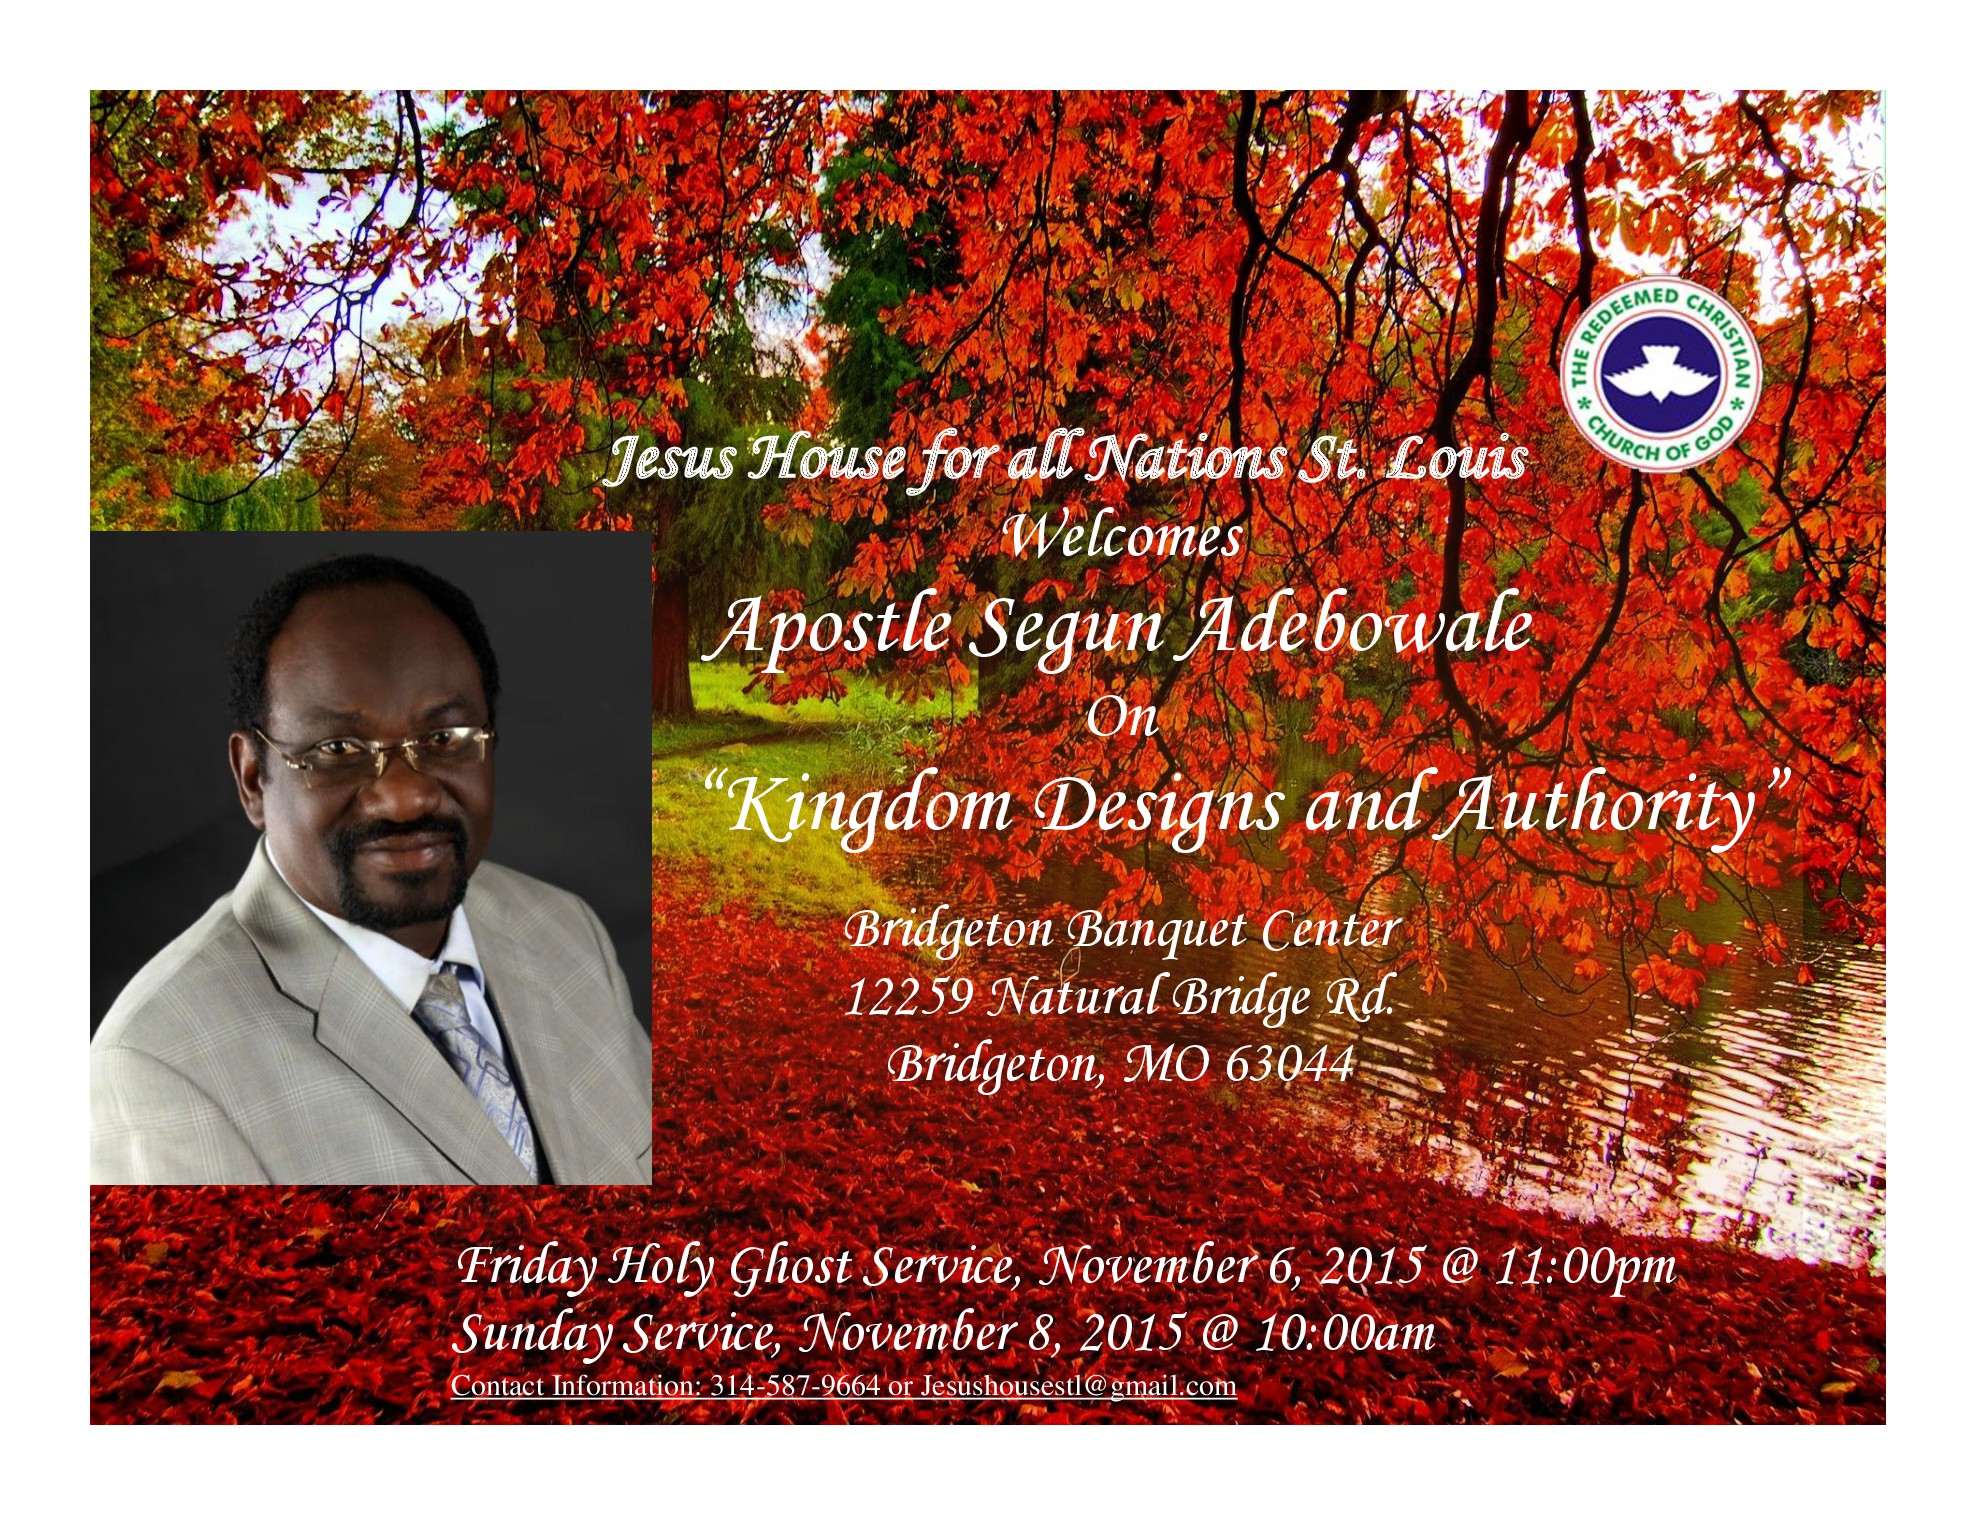 Jesus House for All Nations St. Louis Welcomes Apostle Segun Adebowale